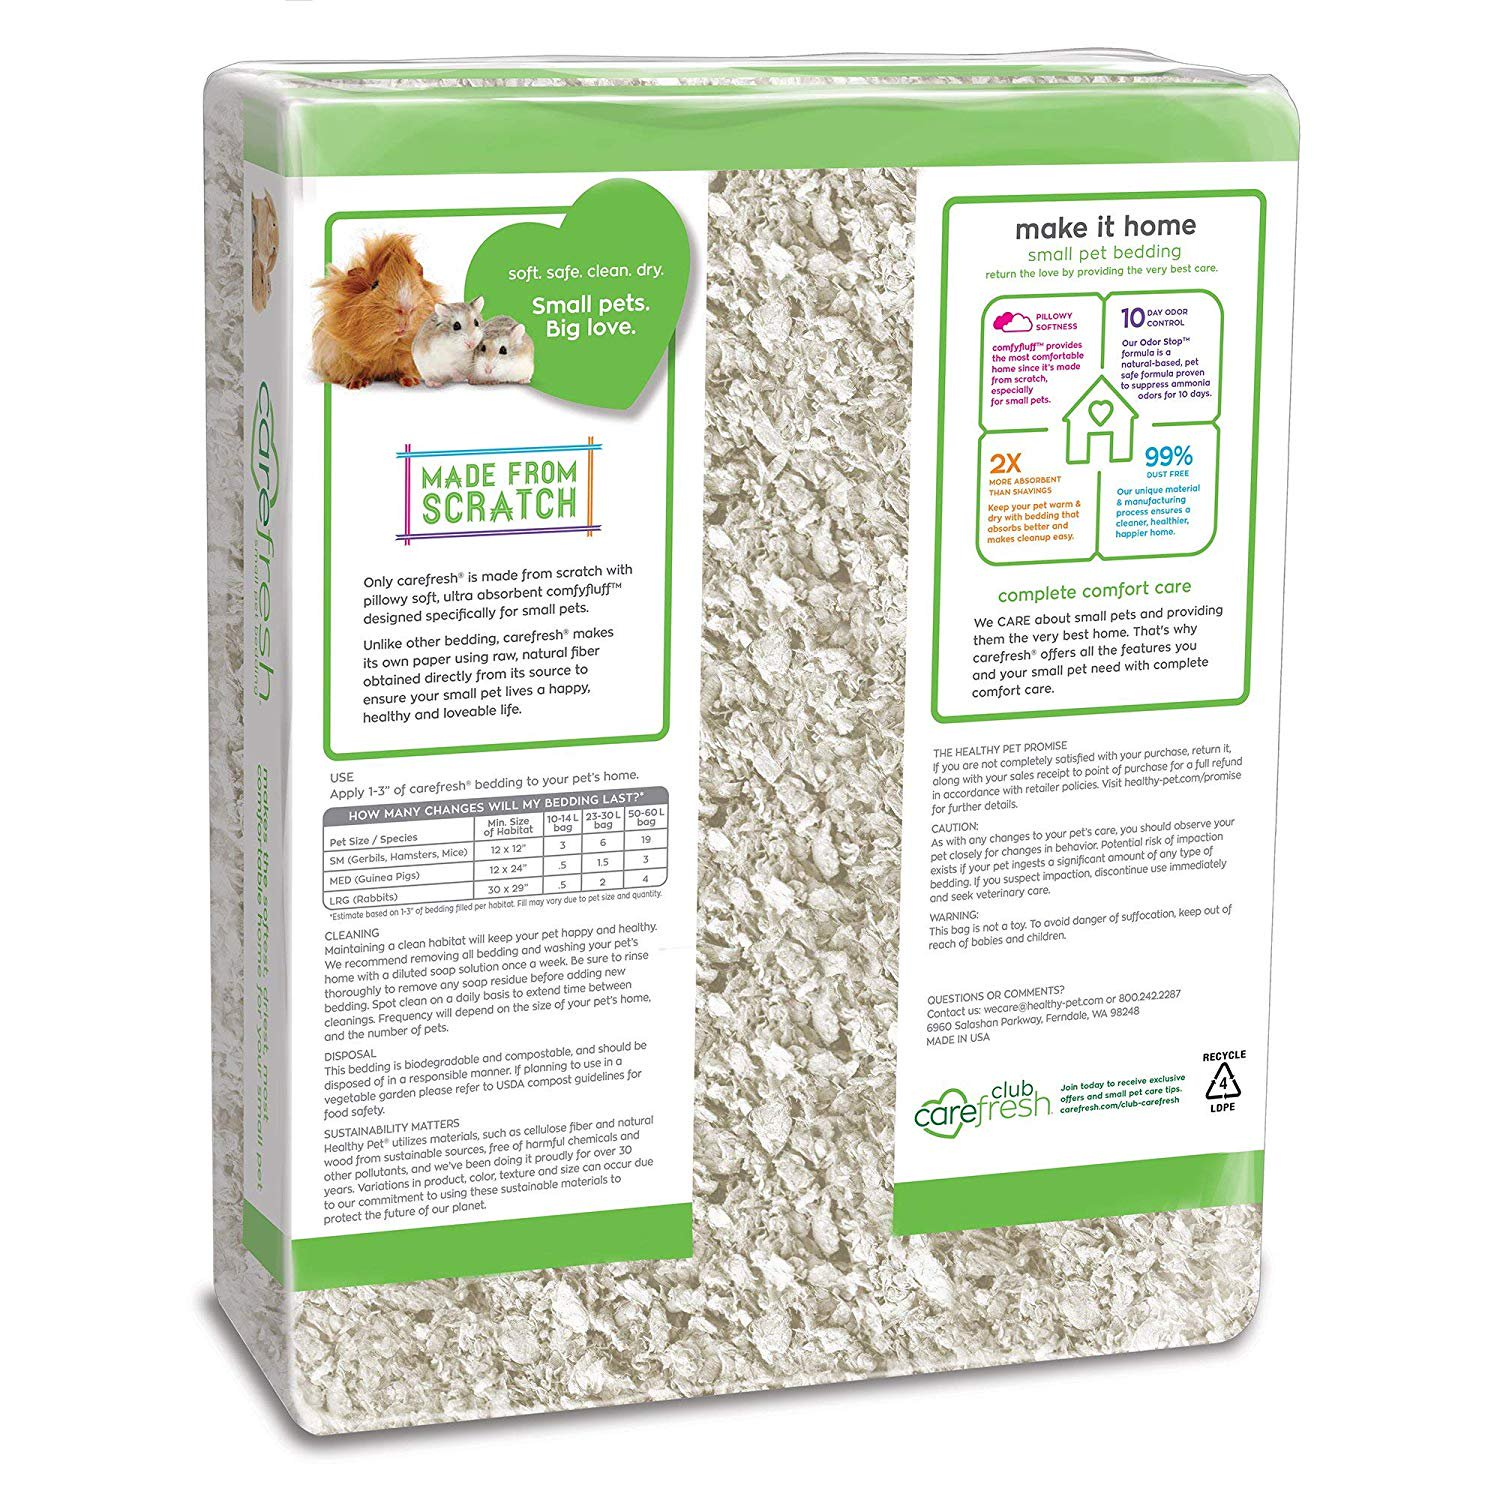 Absorption Corp Carefresh Ultra Pet Bedding 50 Liter Cleaner More Cozy More Comfortable Environment By Monster Pets Walmart Com Walmart Com